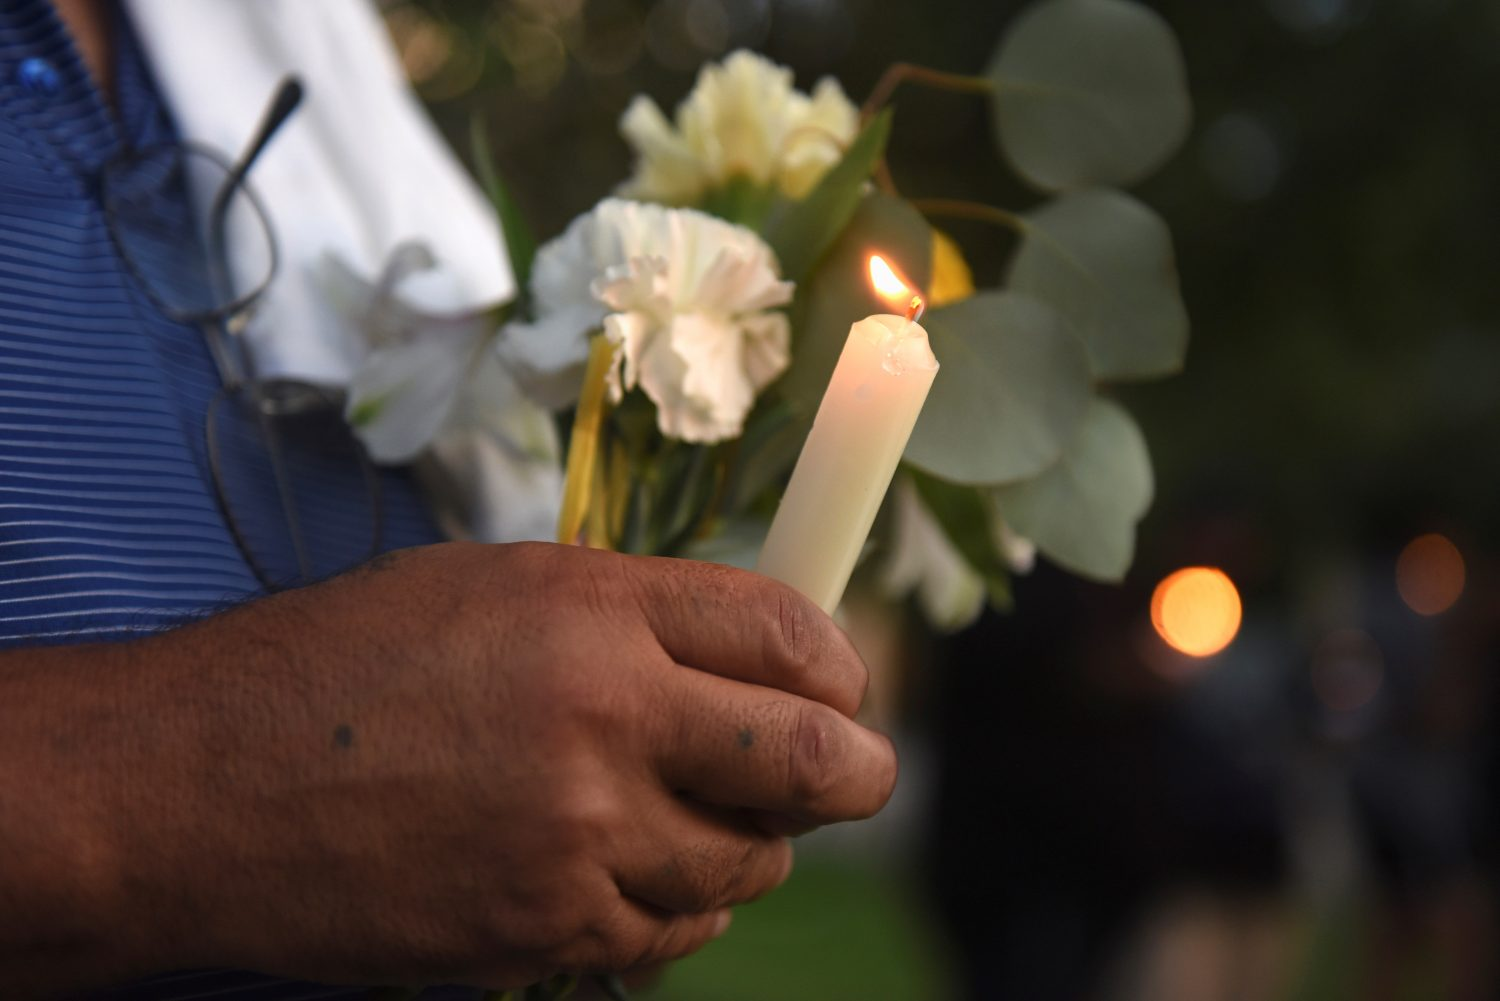 A man holds flowers and a candle as people gather for a vigil following Saturday's shooting in Odessa, Texas, U.S. September 1, 2019. REUTERS/Callaghan O'Hare